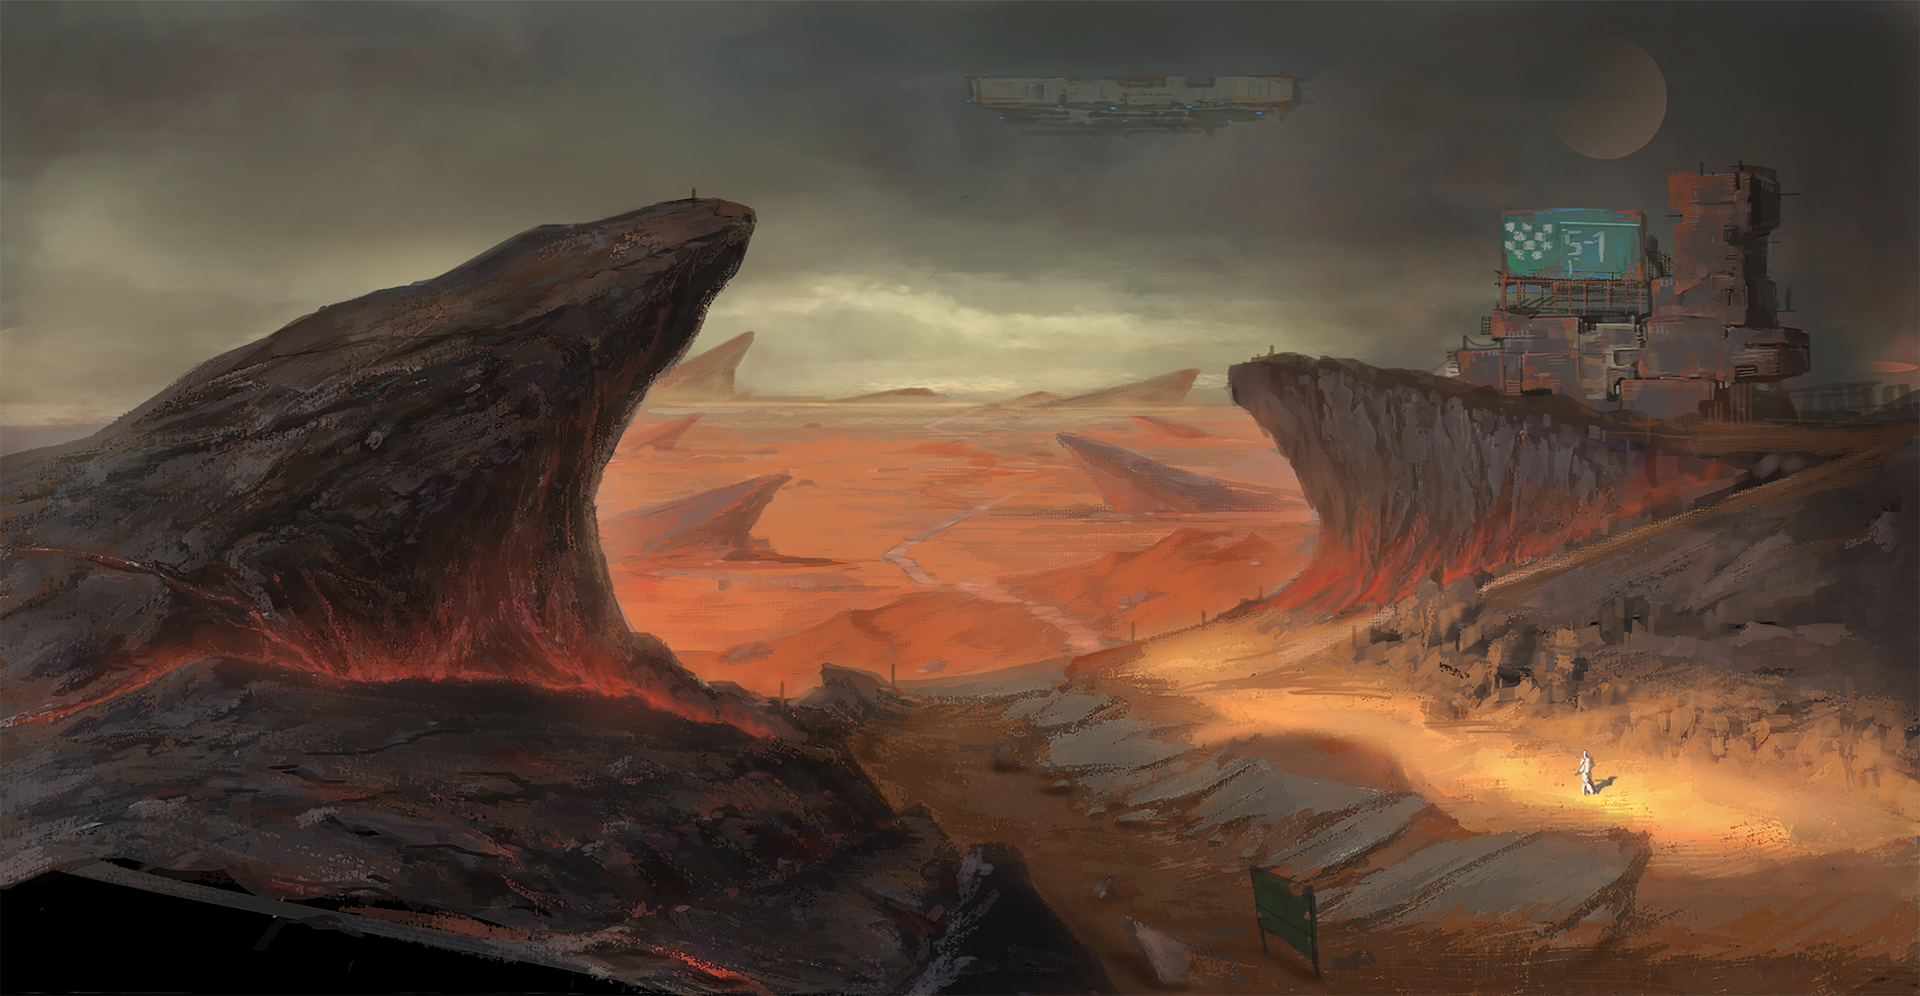 Black Mountain Desert Concept Art by Game Development student Weiyi Qin